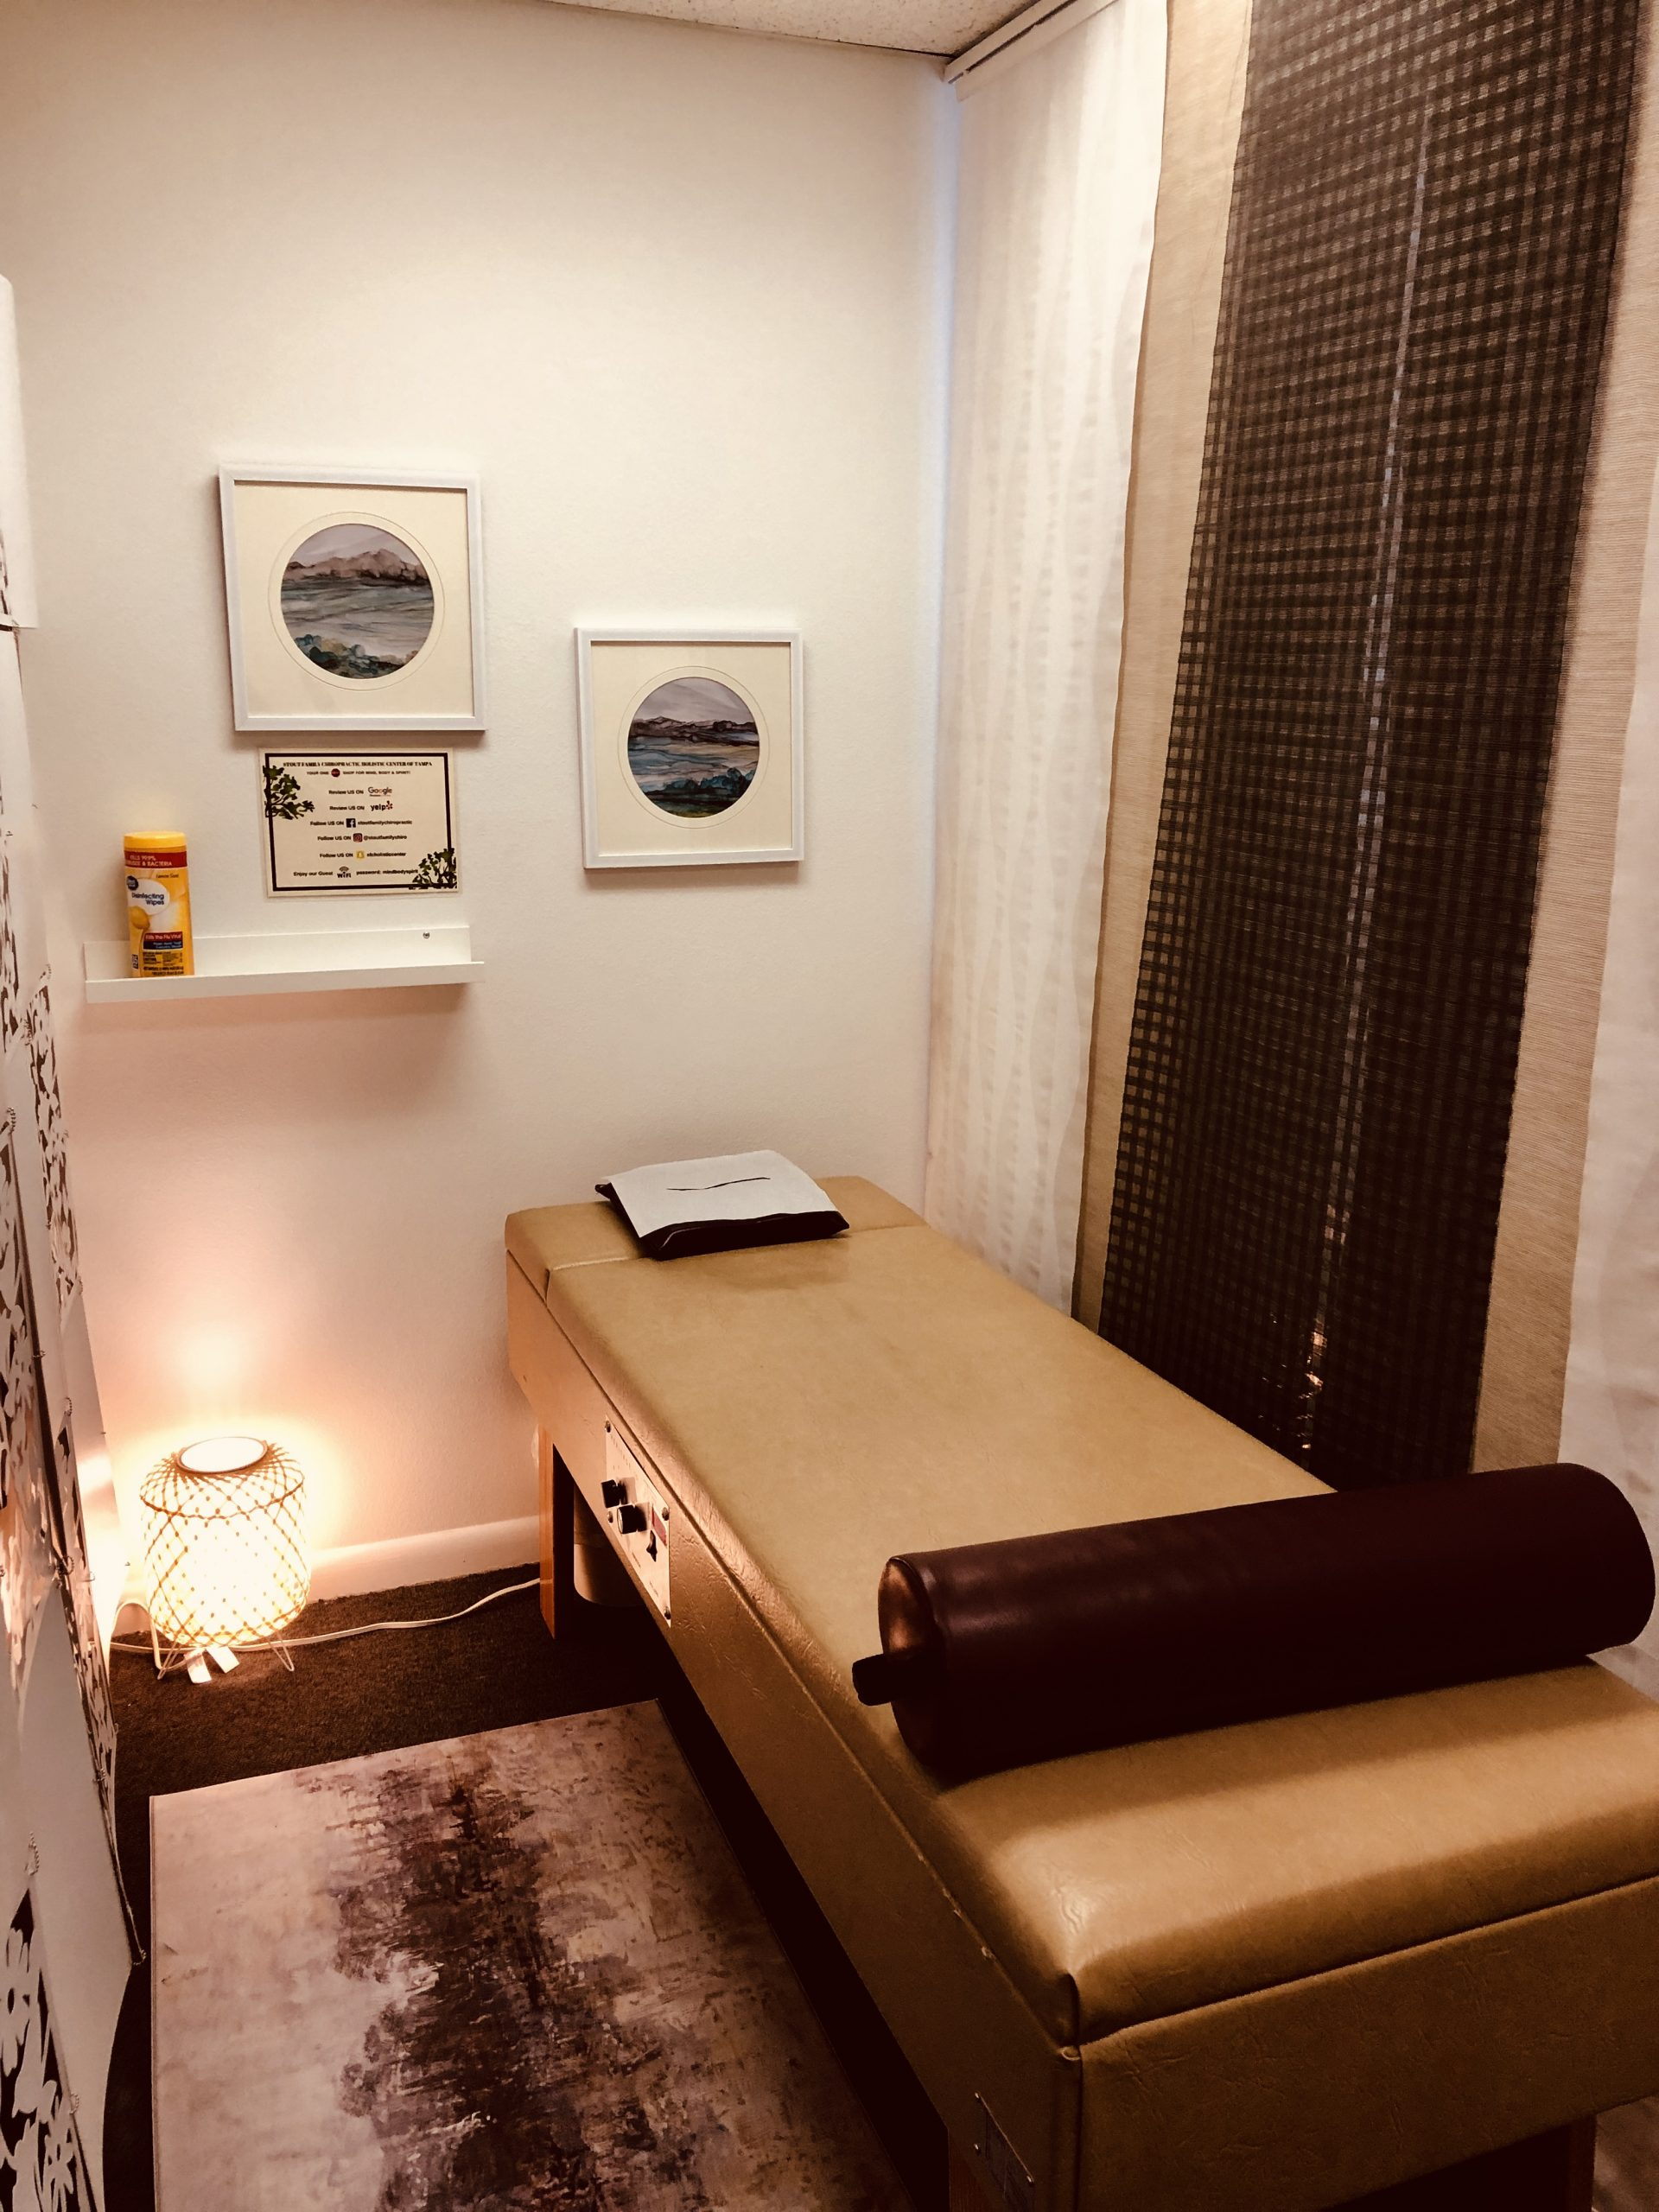 Room in stout family chiropractic office